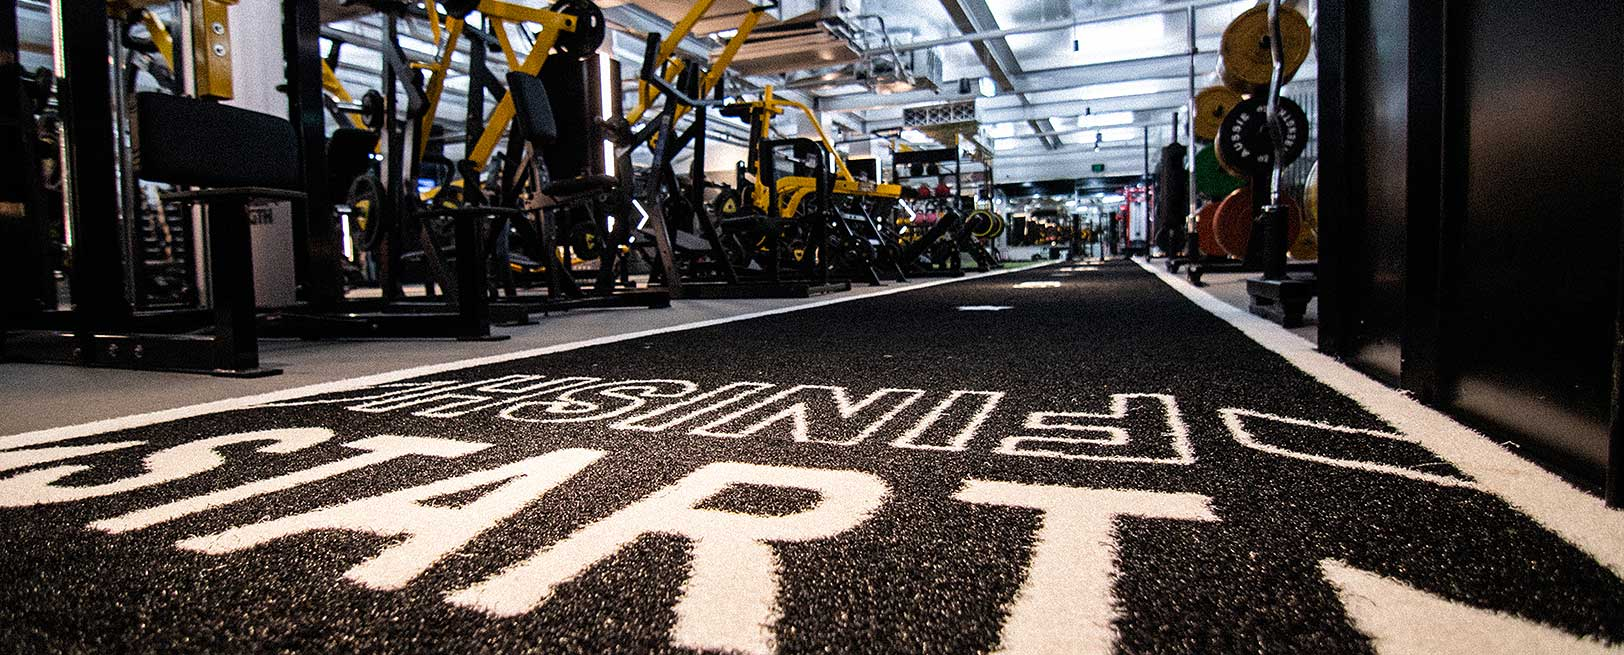 fitness_playground_marrickville_gym_facilities_banner_9